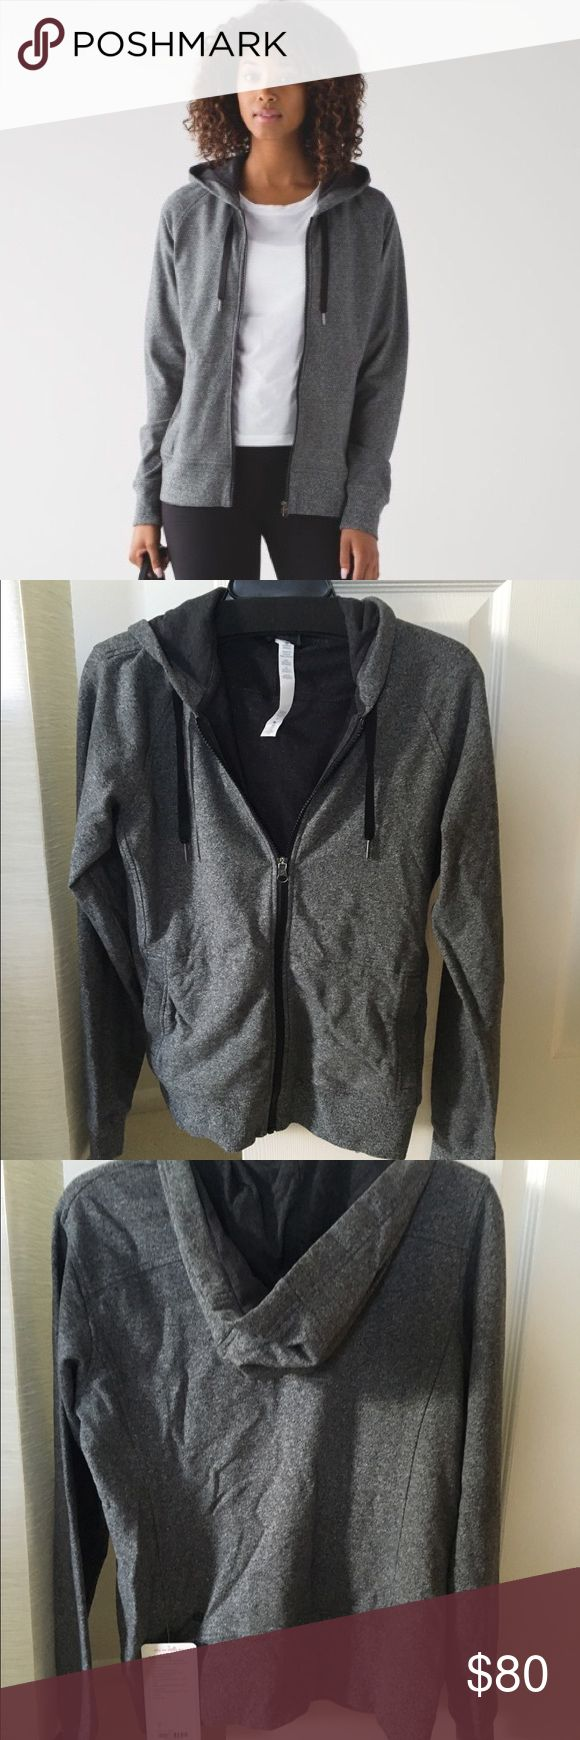 NWT!  Lululemon Split Hoodie, size 6!  Dark gray Brand new with tags, never worn lululemon hoodie in charcoal gray, size 6.  Super cute and comfortable- perfect for throwing on after a workout.  French Terry fabric is 4-way stretch.  Zippered front lululemon athletica Jackets & Coats